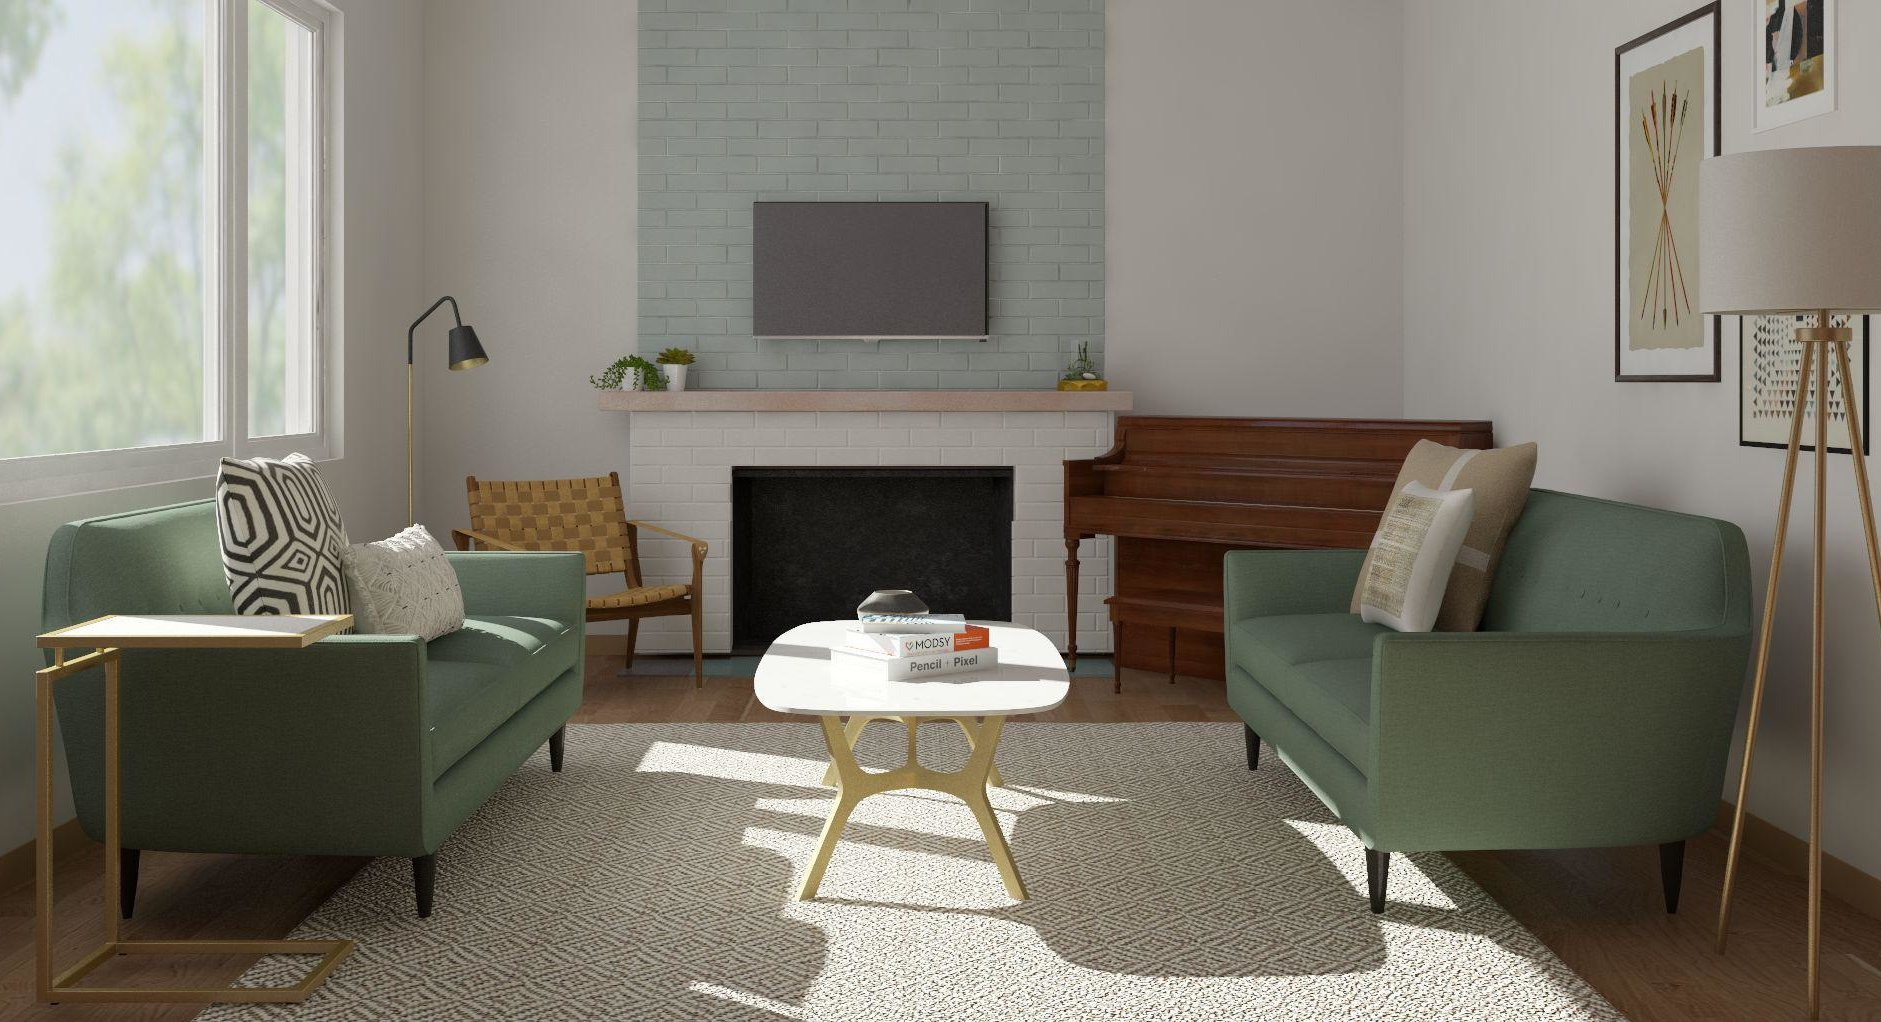 Top 10 plans you should make before designing your home interior